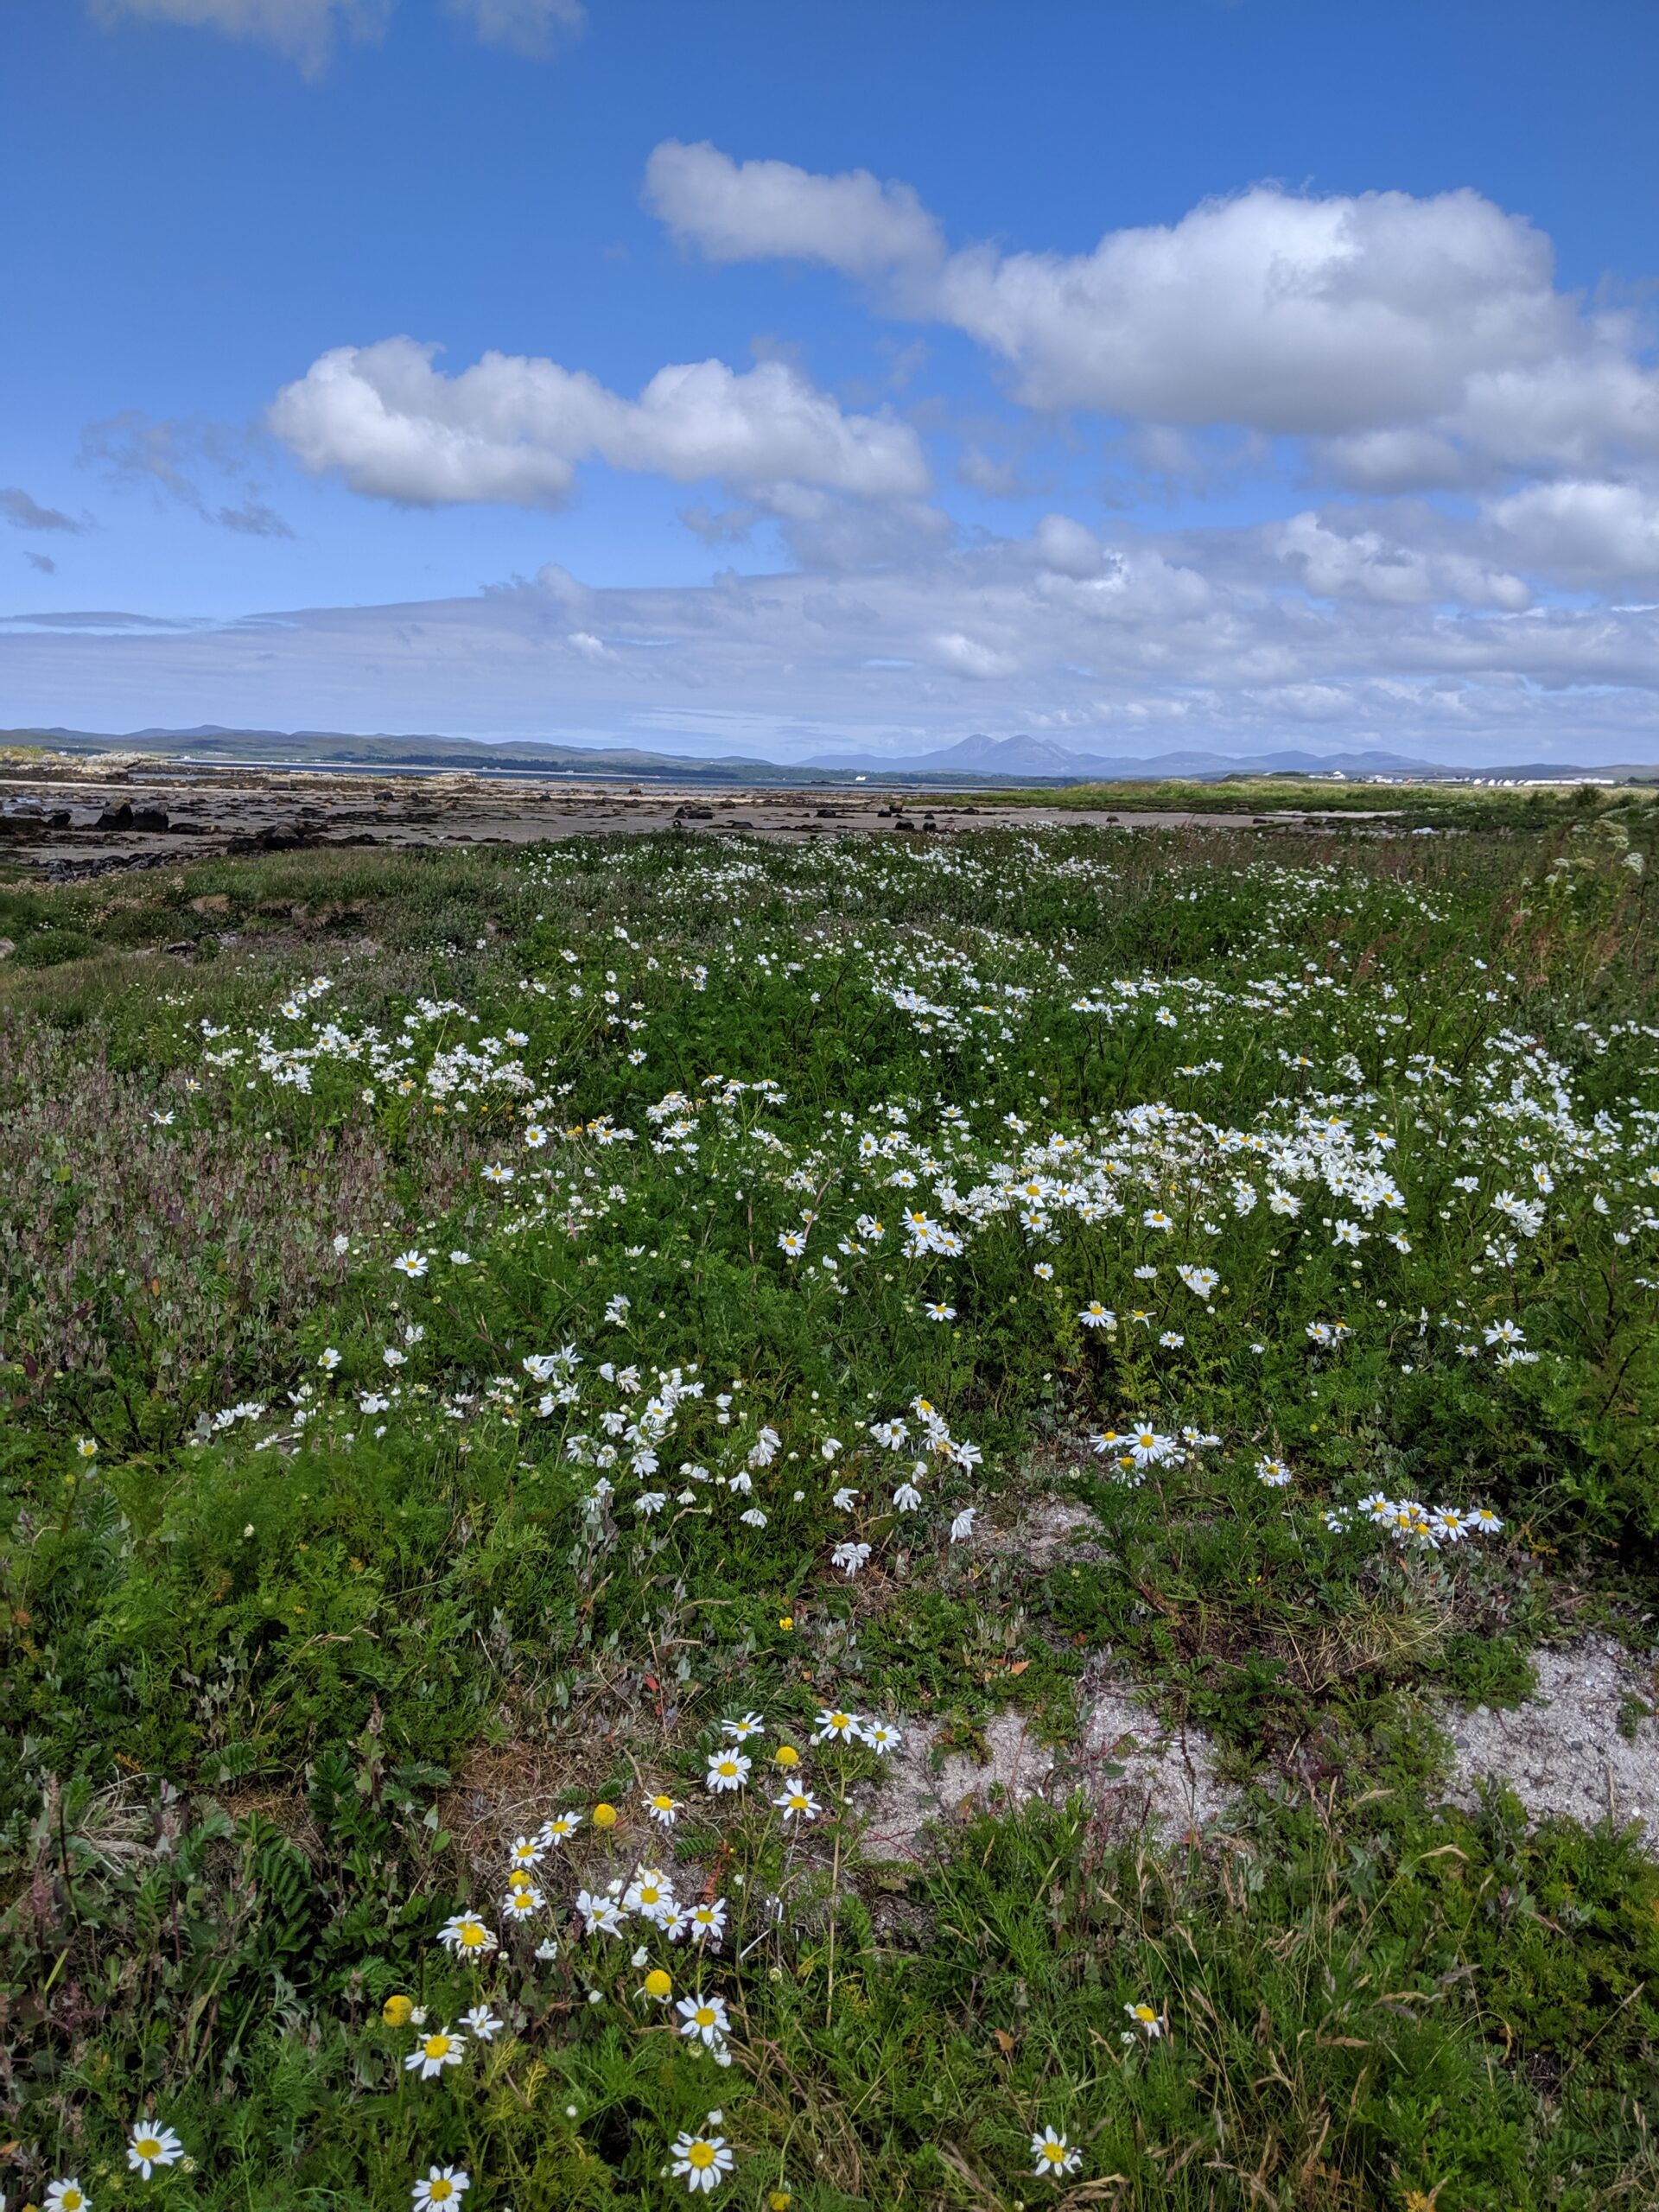 A field of white daisies in the foreground, with the village of Bowmore on the far right in the distance. On the horizon are peaks of the island of Jura.